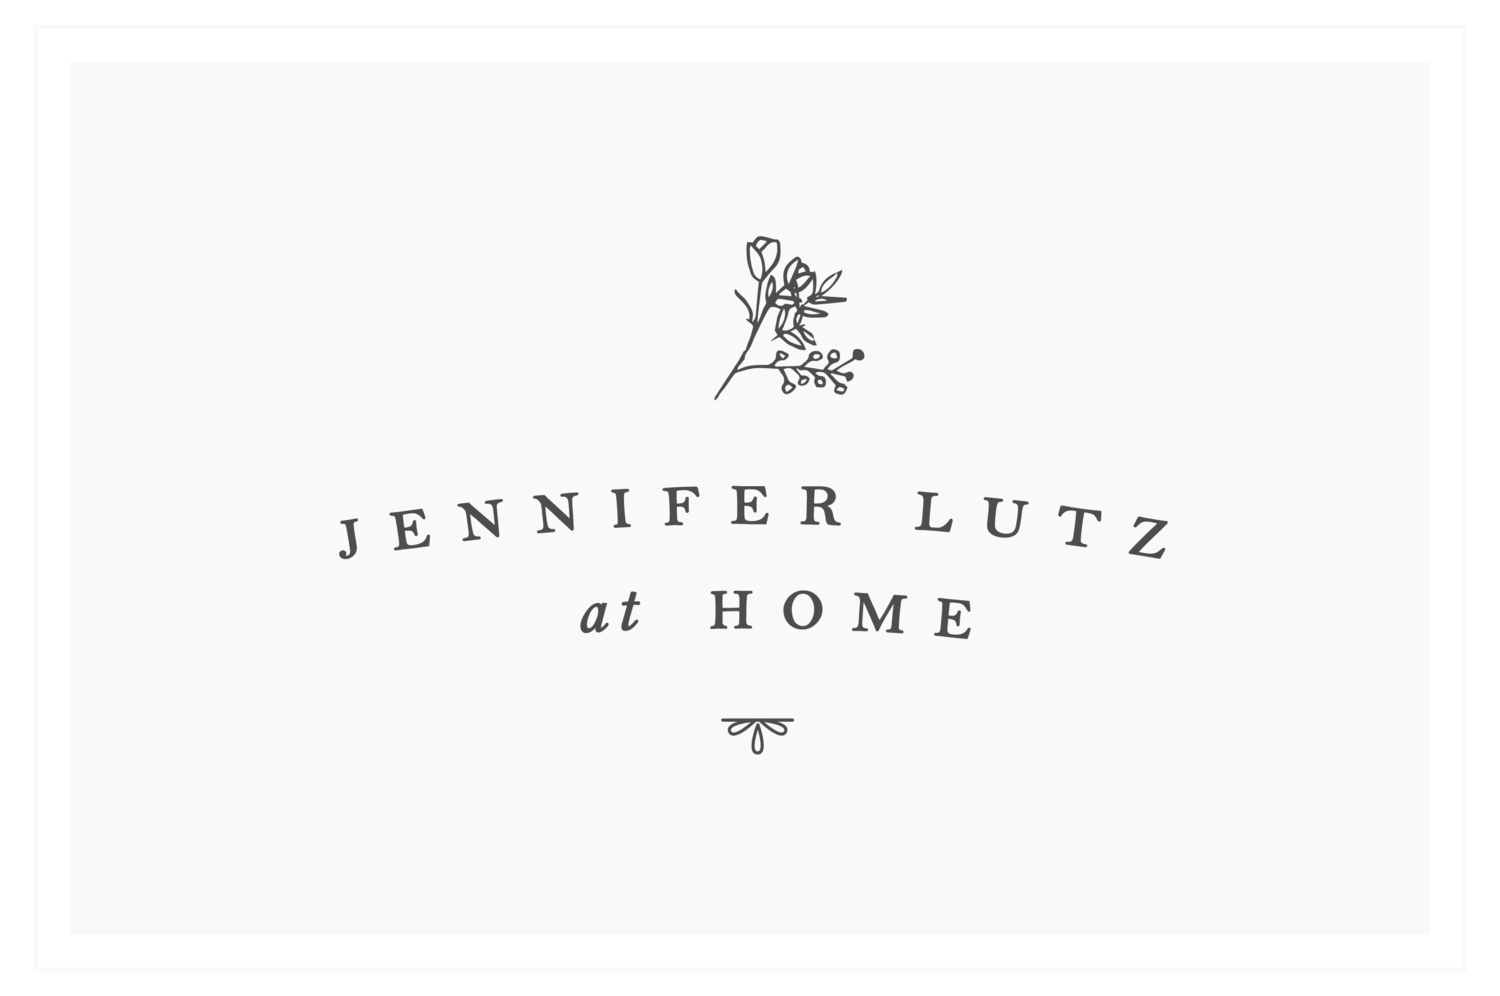 Jennifer Lutz at Home